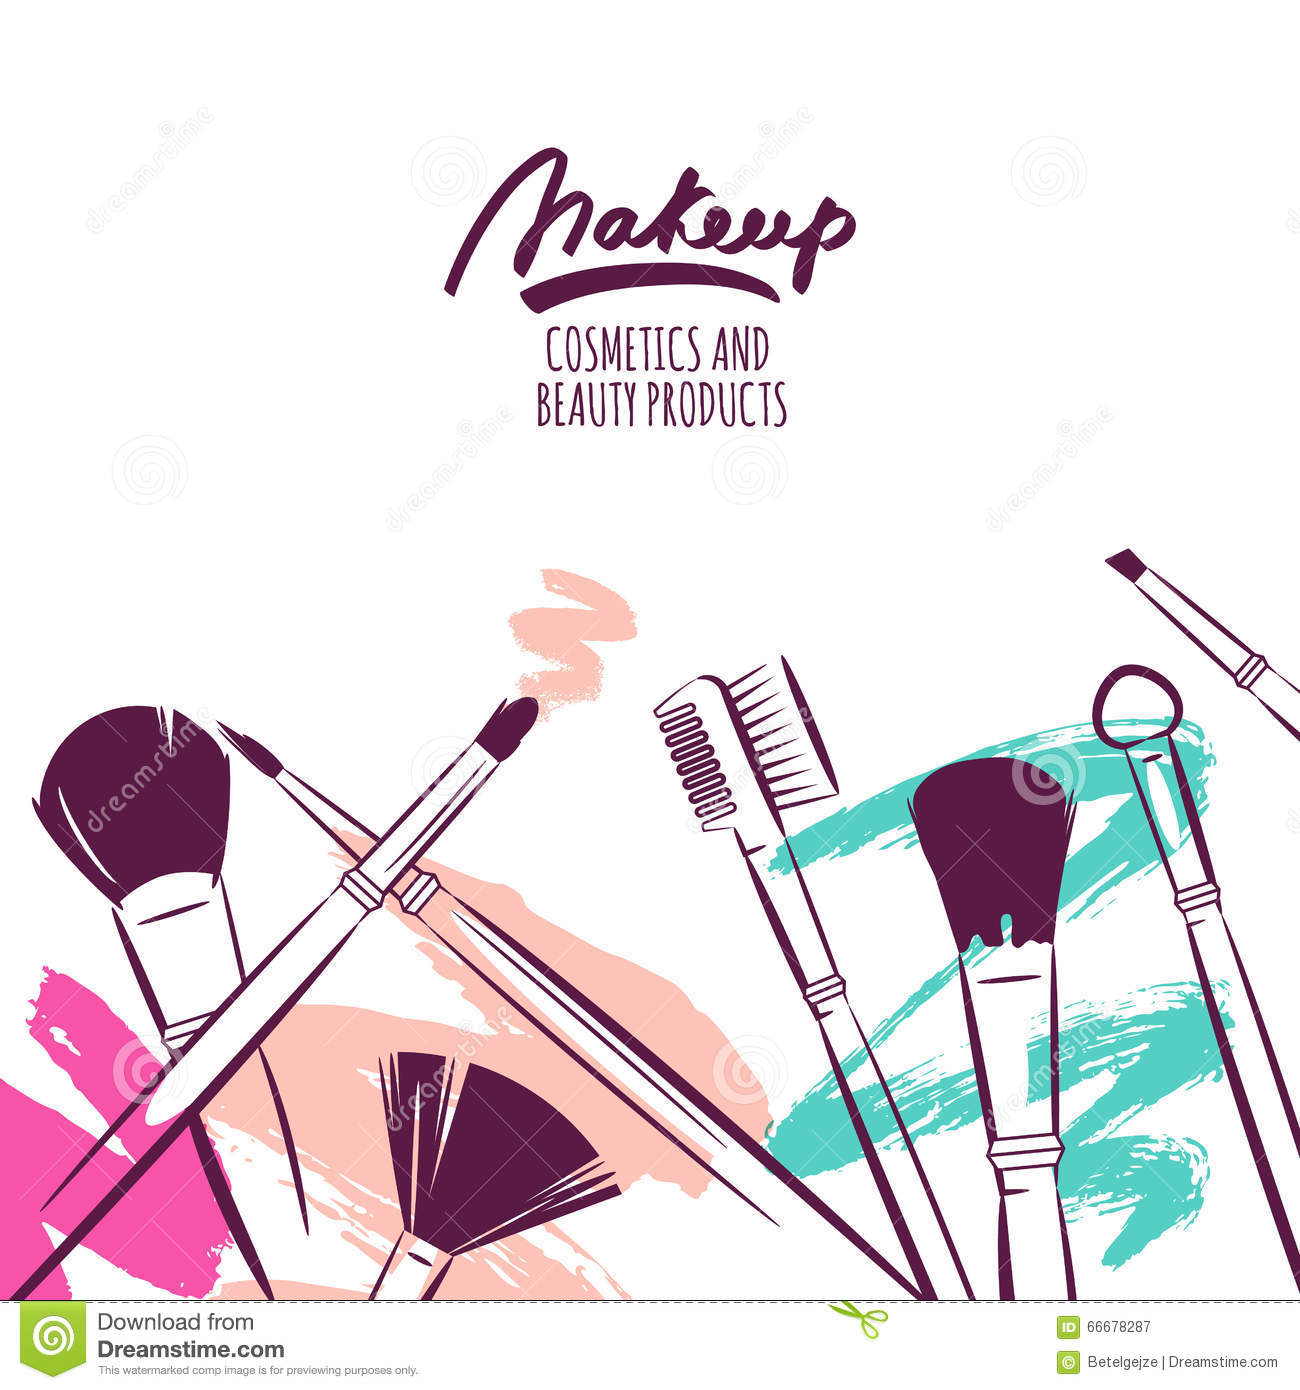 Watercolor Hand Drawn Illustration Of Makeup Brushes On Colorful Grunge Background. Cartoon ...